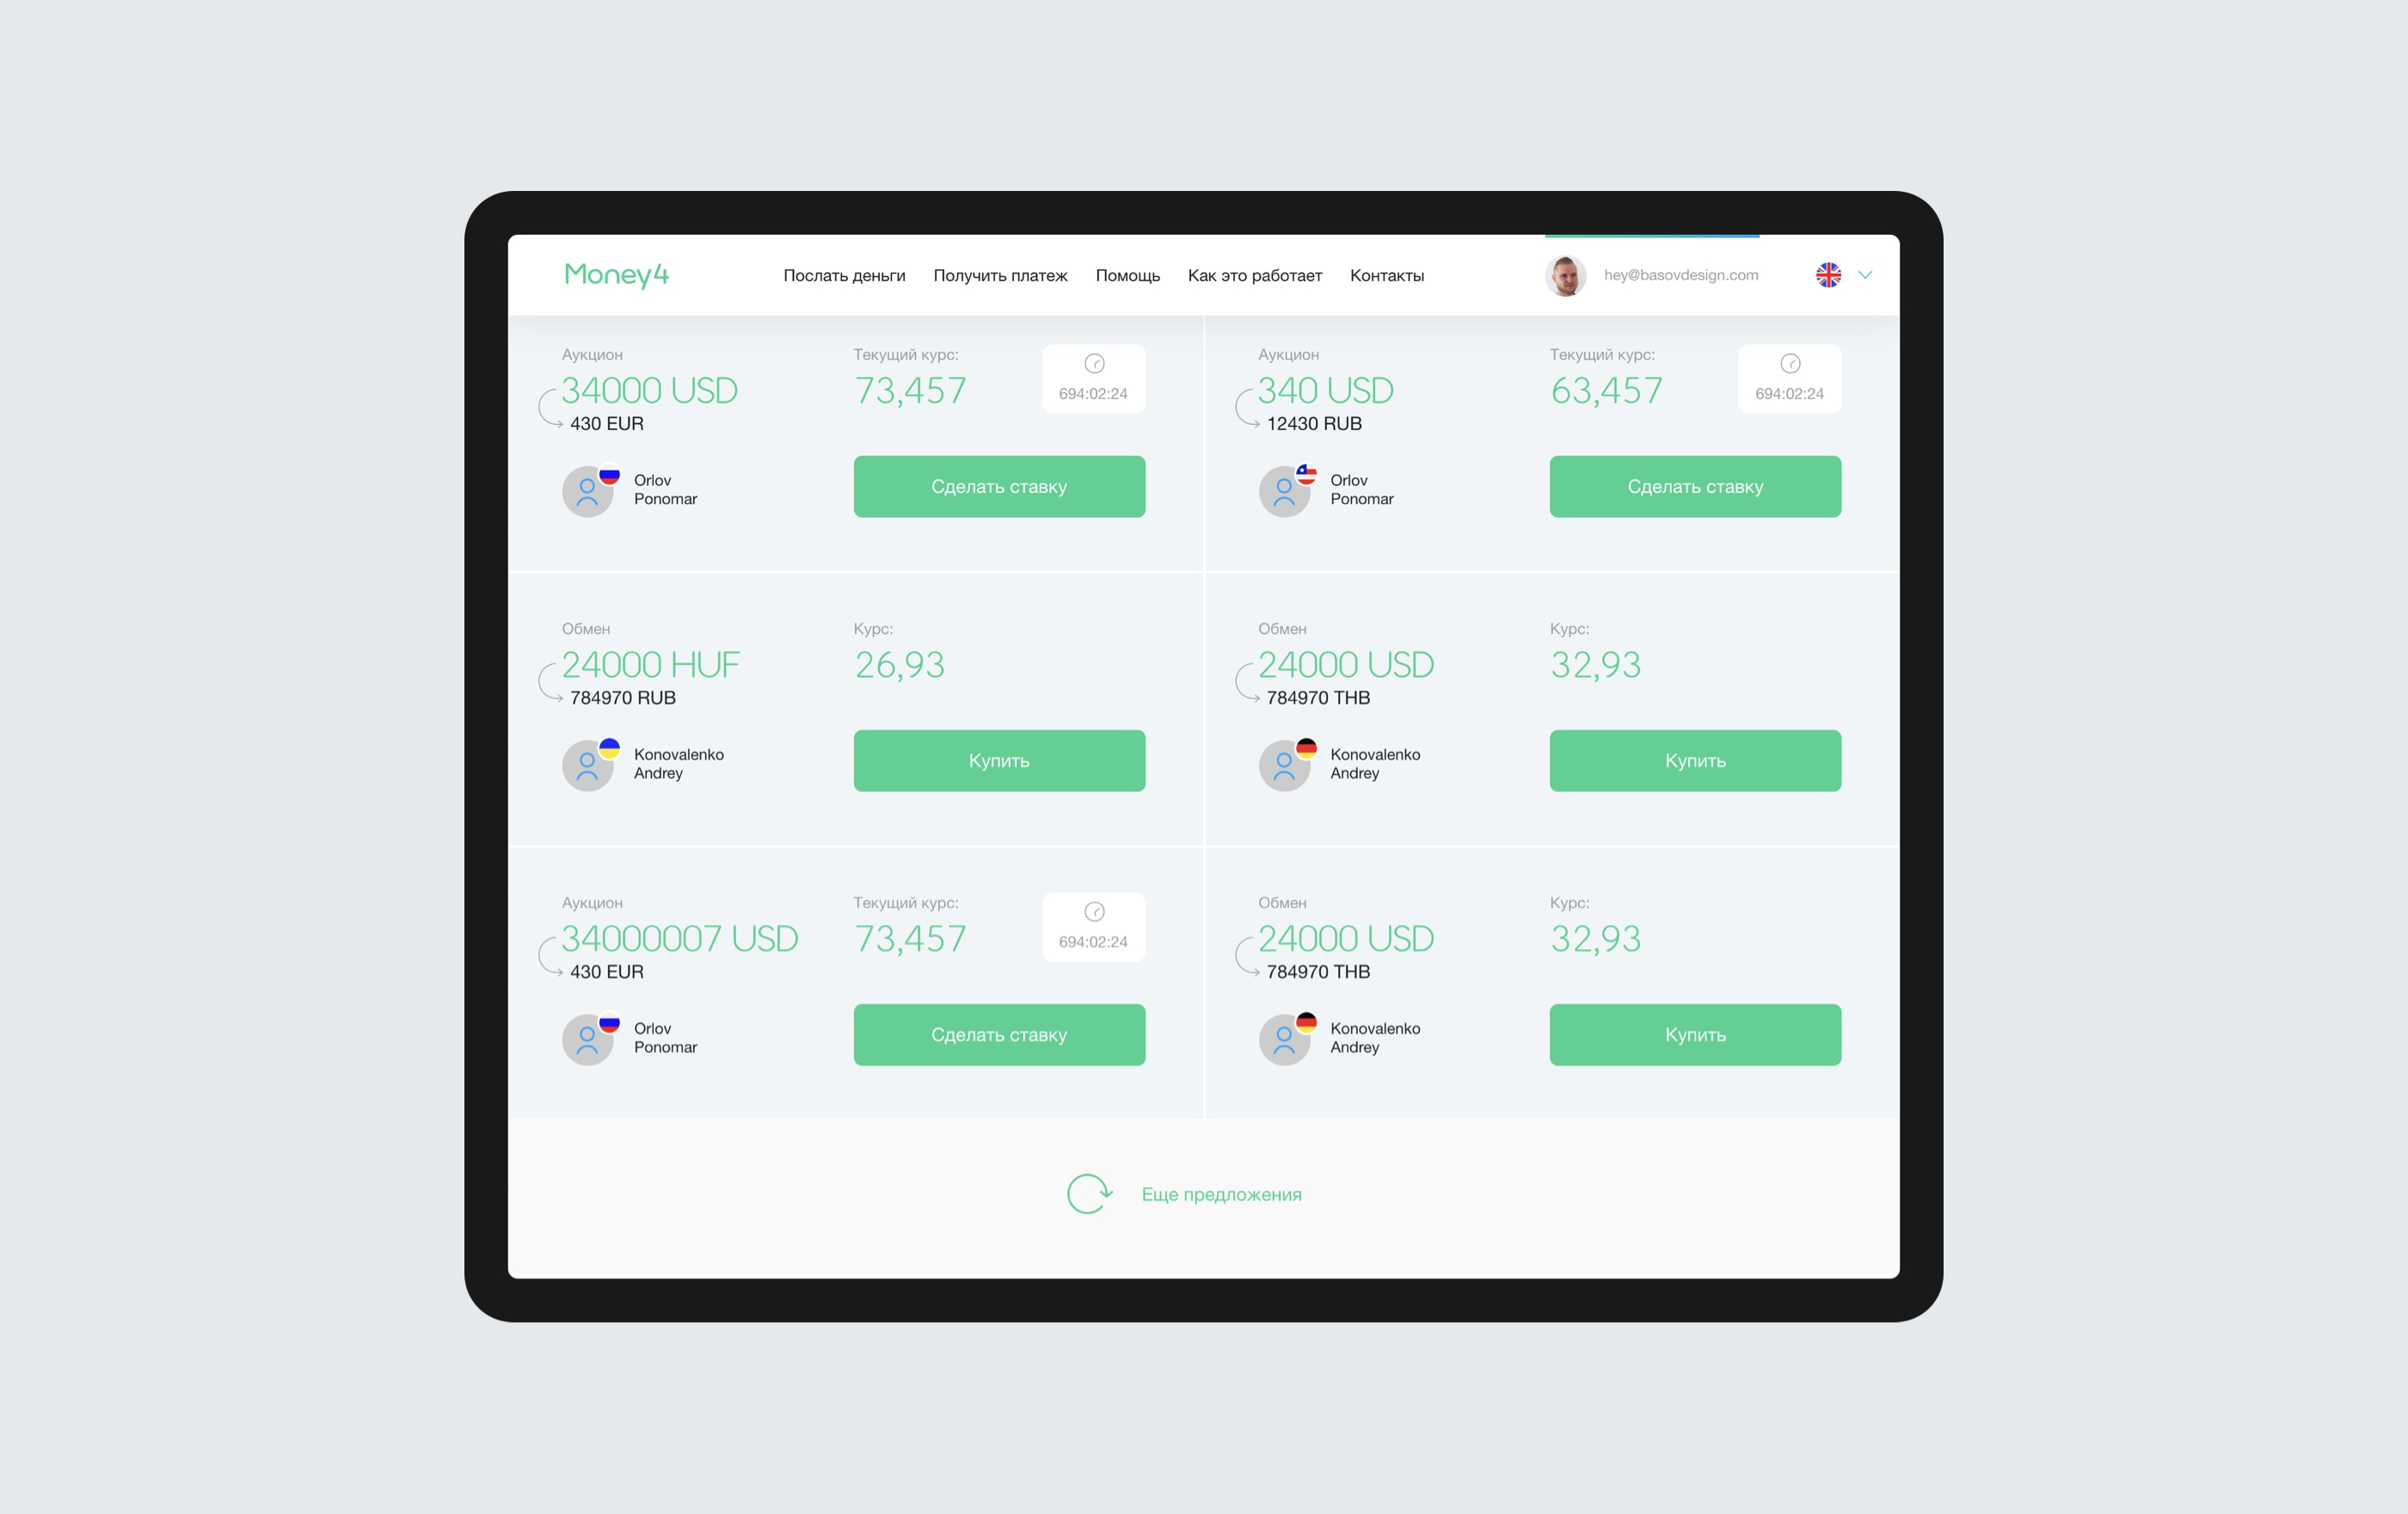 15_place a bet page_Mobile App and website Money Nebeus_Money4_by_basov_design_